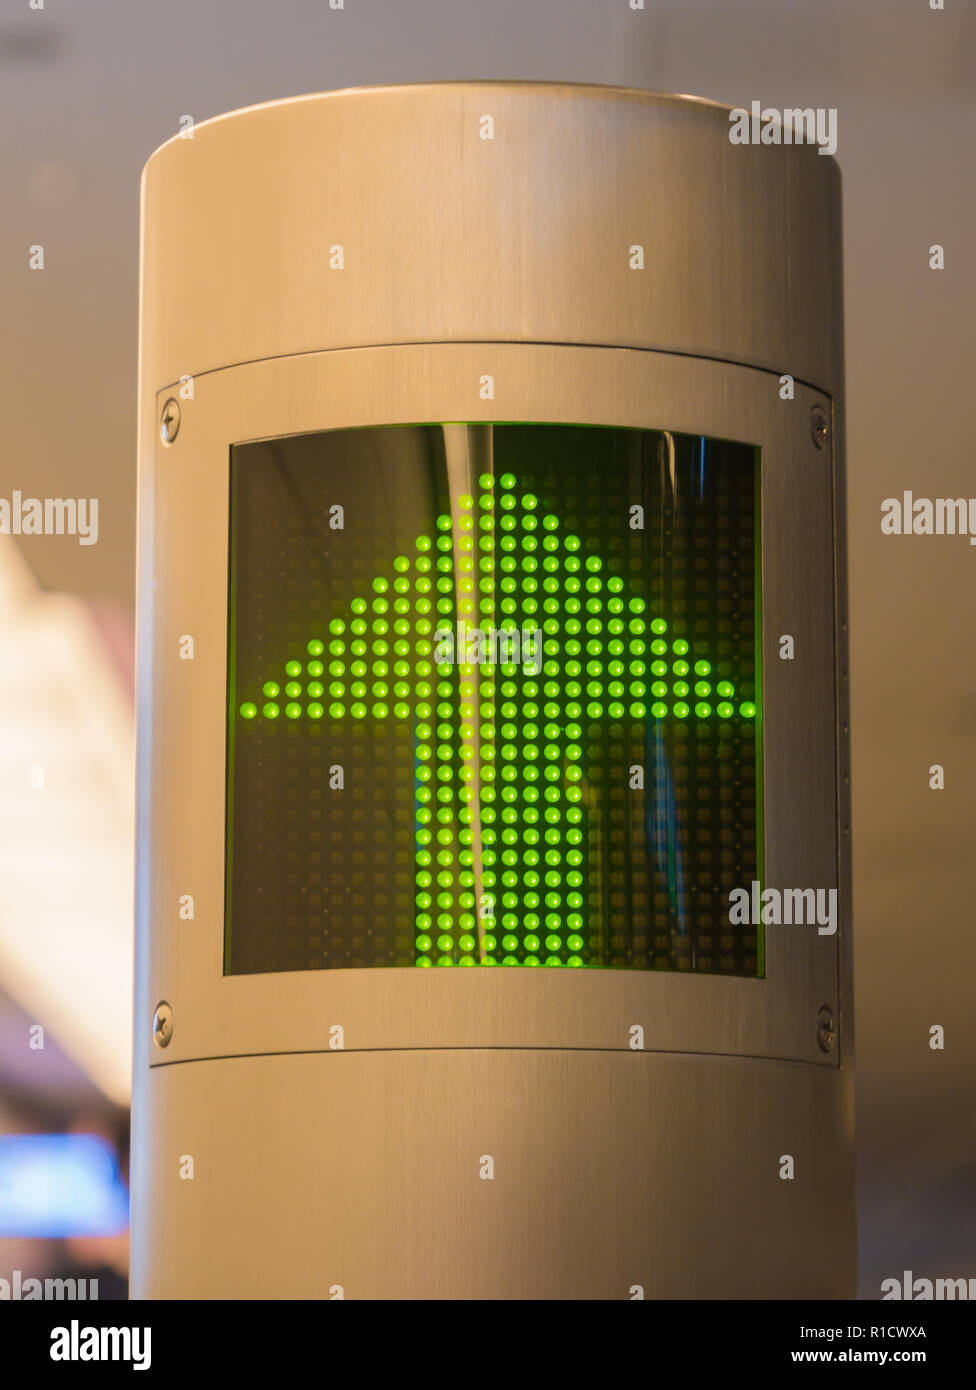 Illuminated green arrow sign that directs to the passage which leads to the departure gate - Stock Image